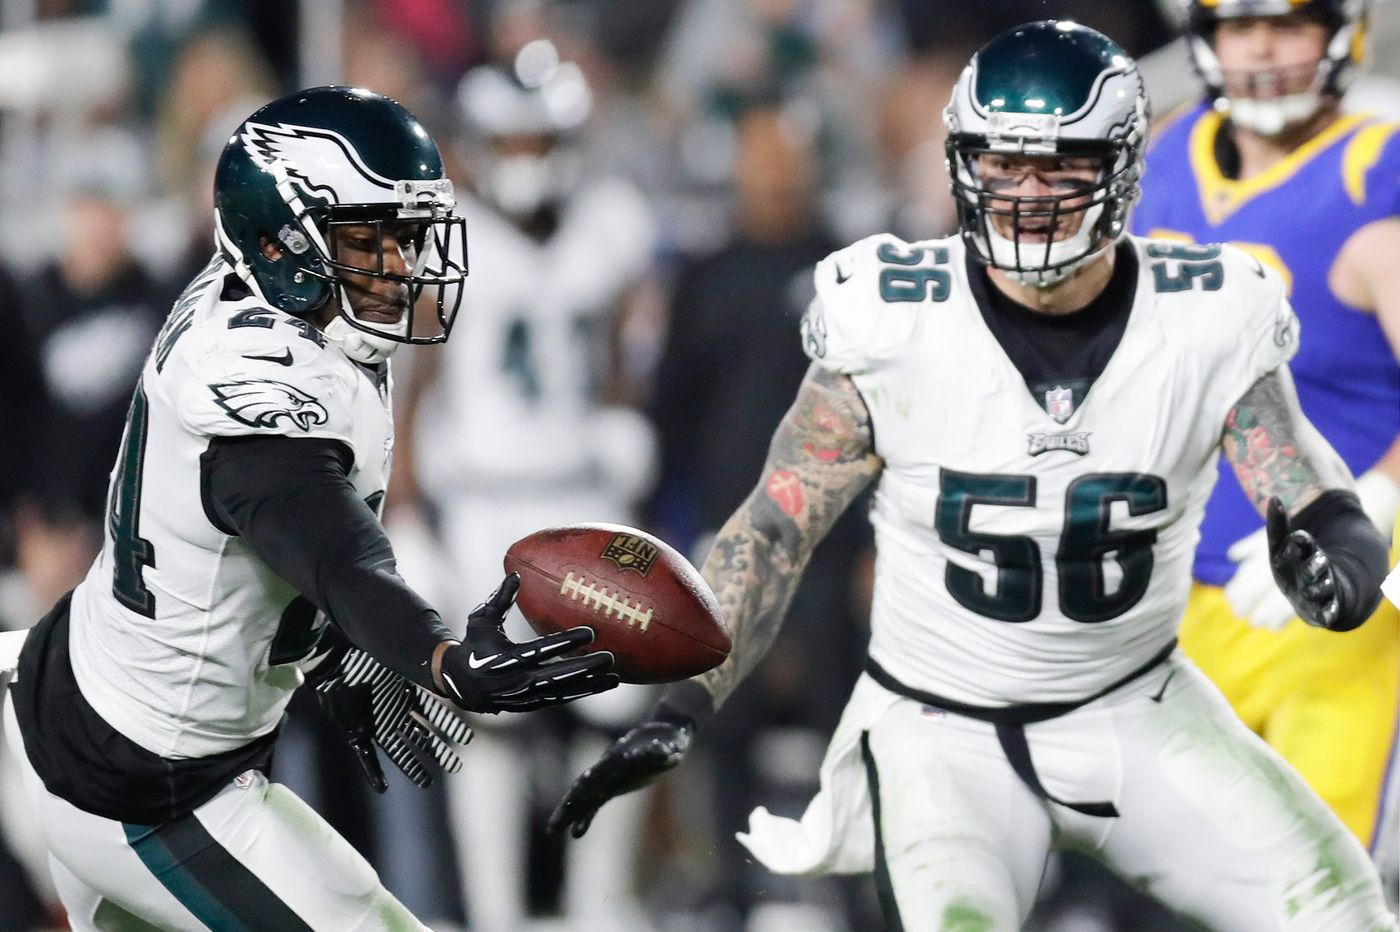 Eagles' Chris Long named the 2018 Walter Payton NFL Man of the Year